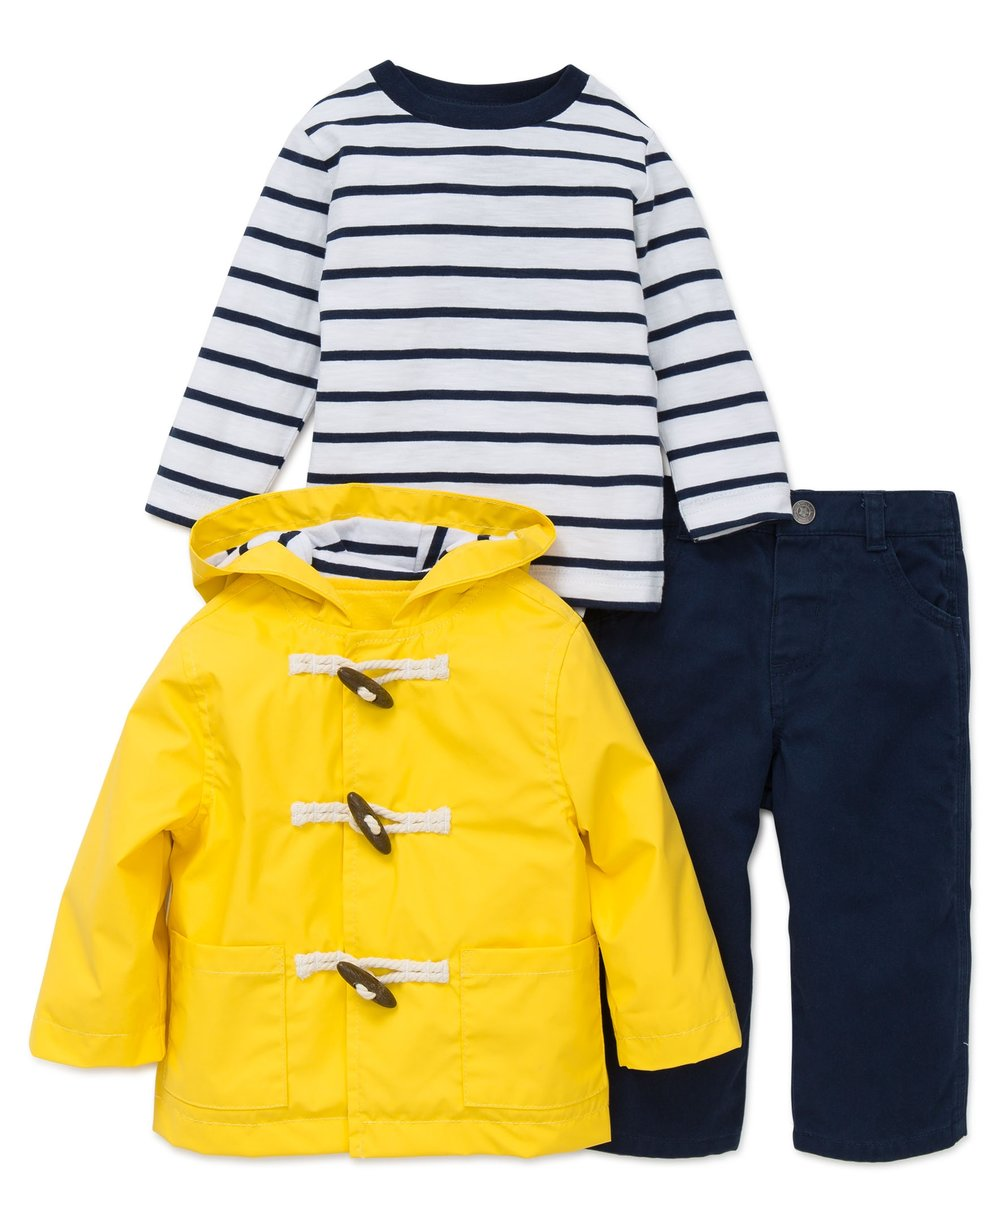 boy raincoat set.JPG